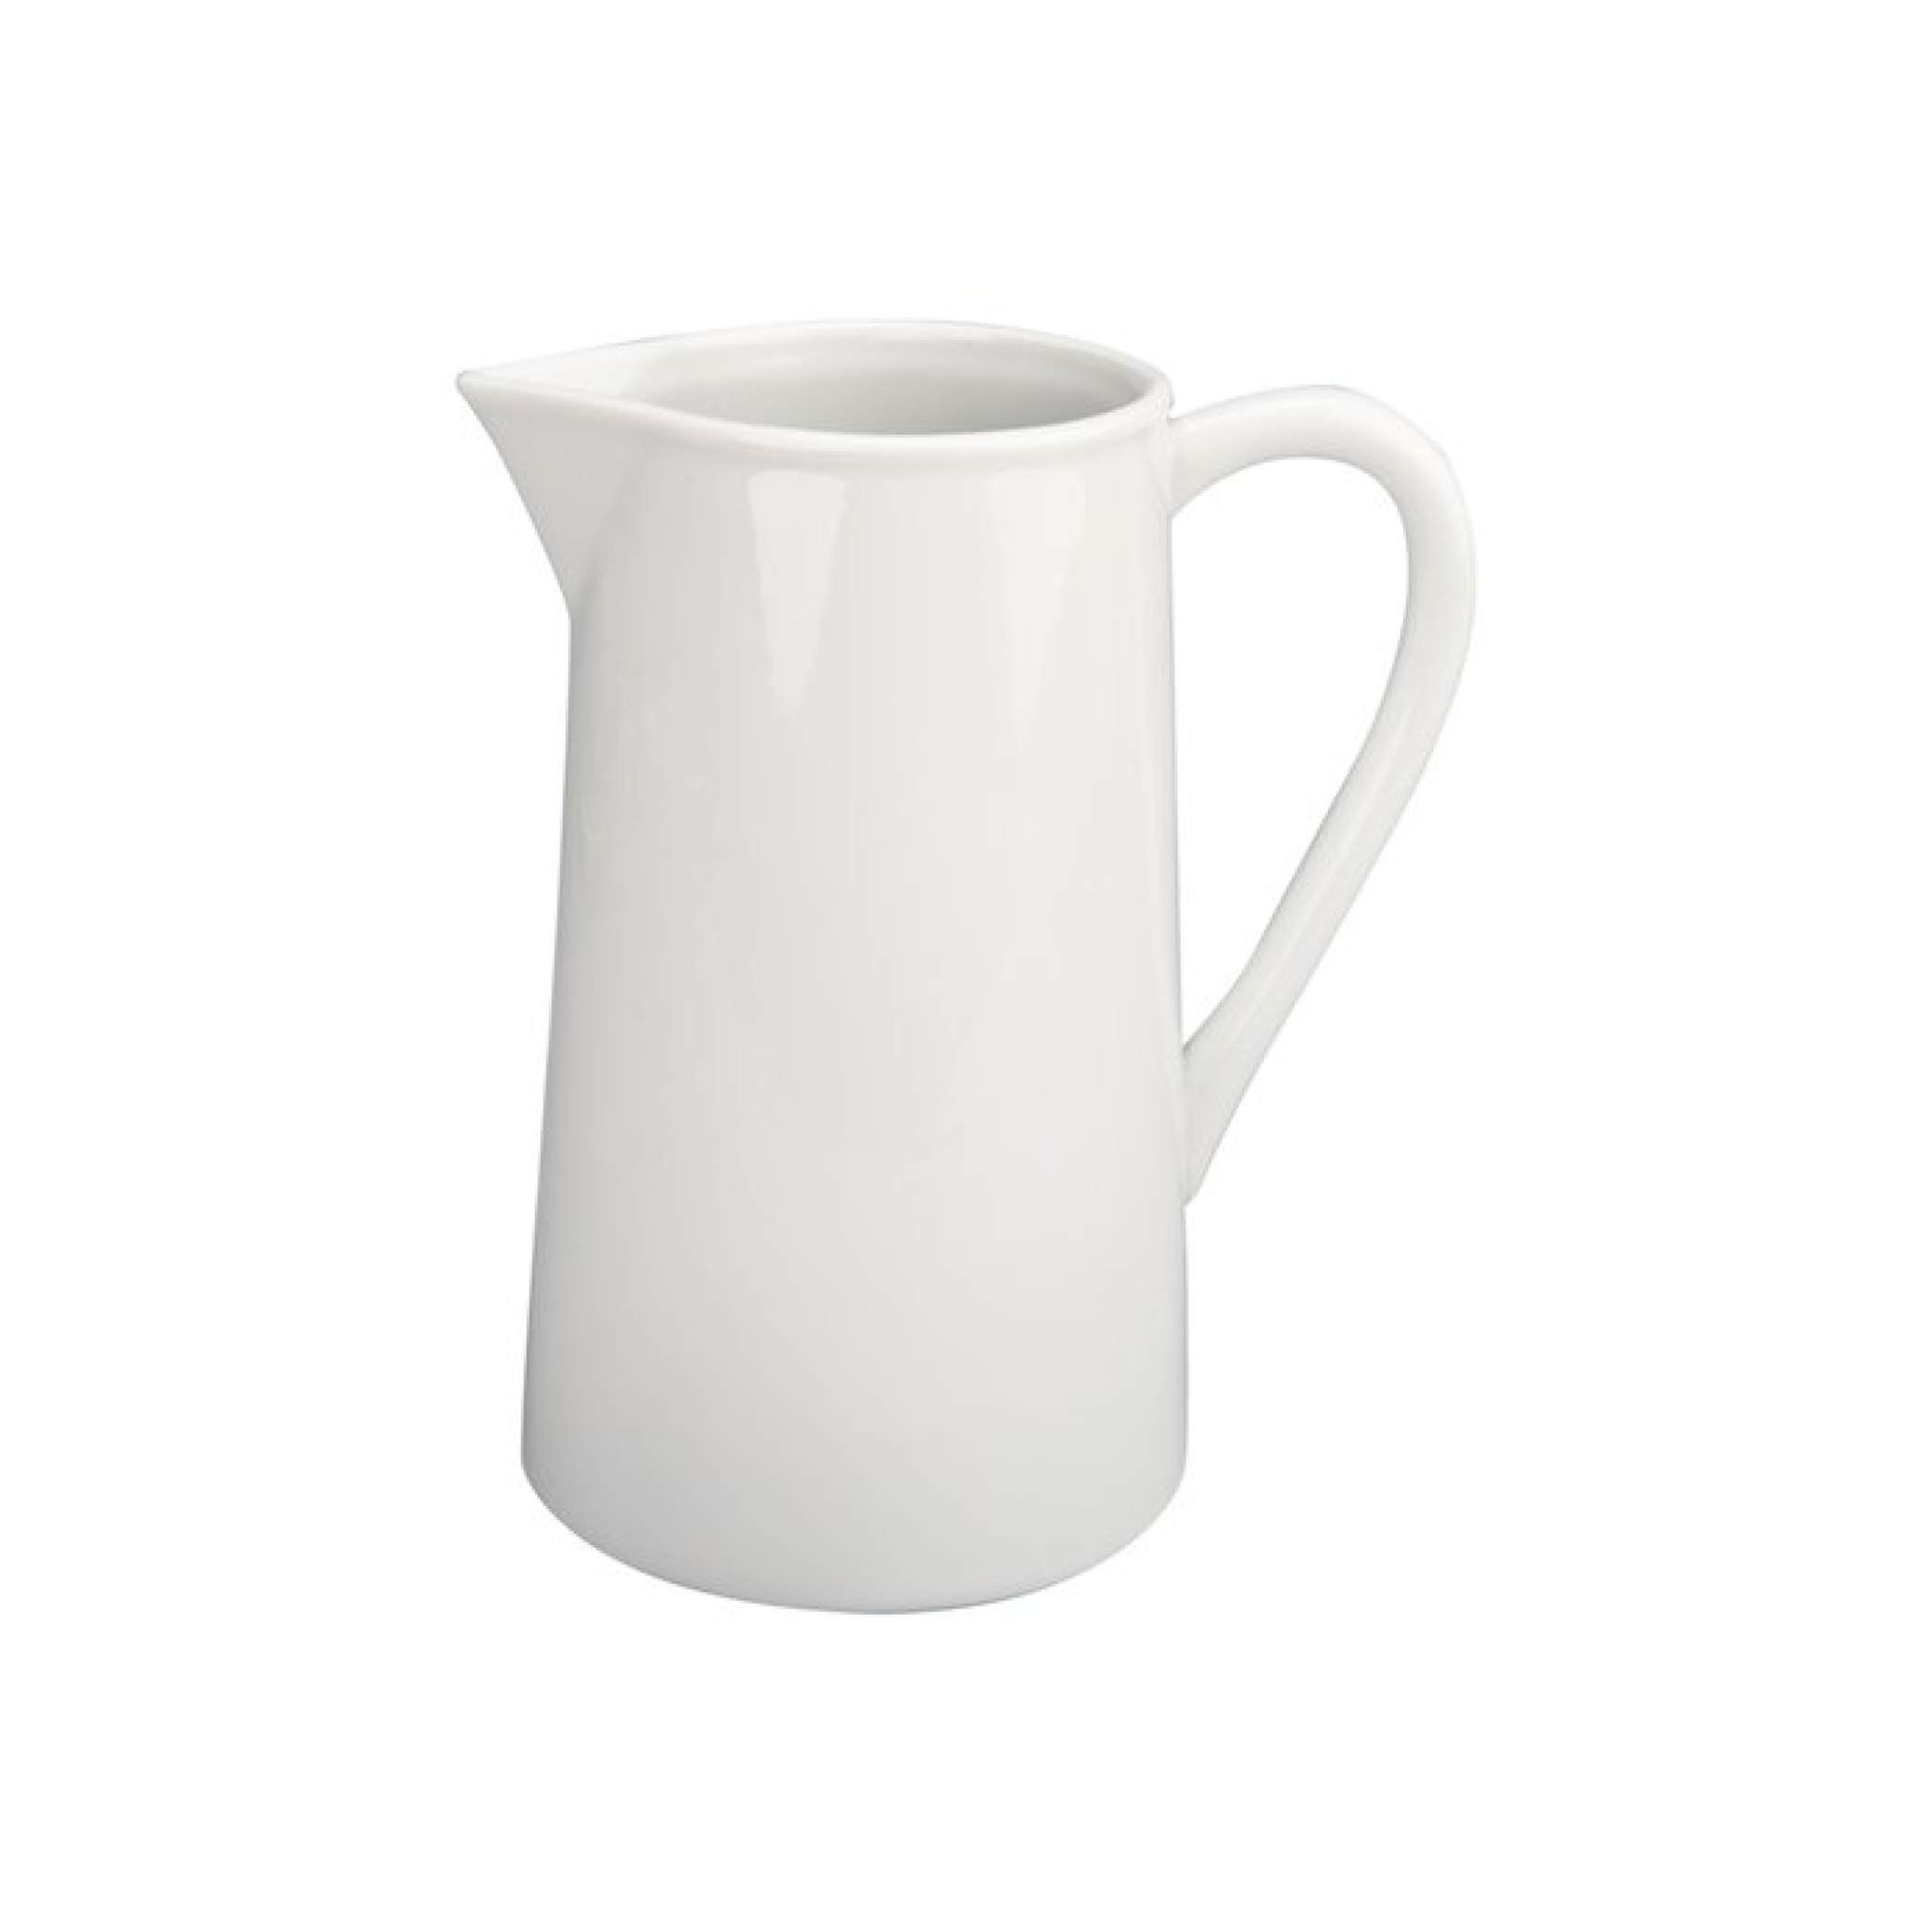 Straight Pitcher, White $21.95   Wants 1 Has 1 Needs 0